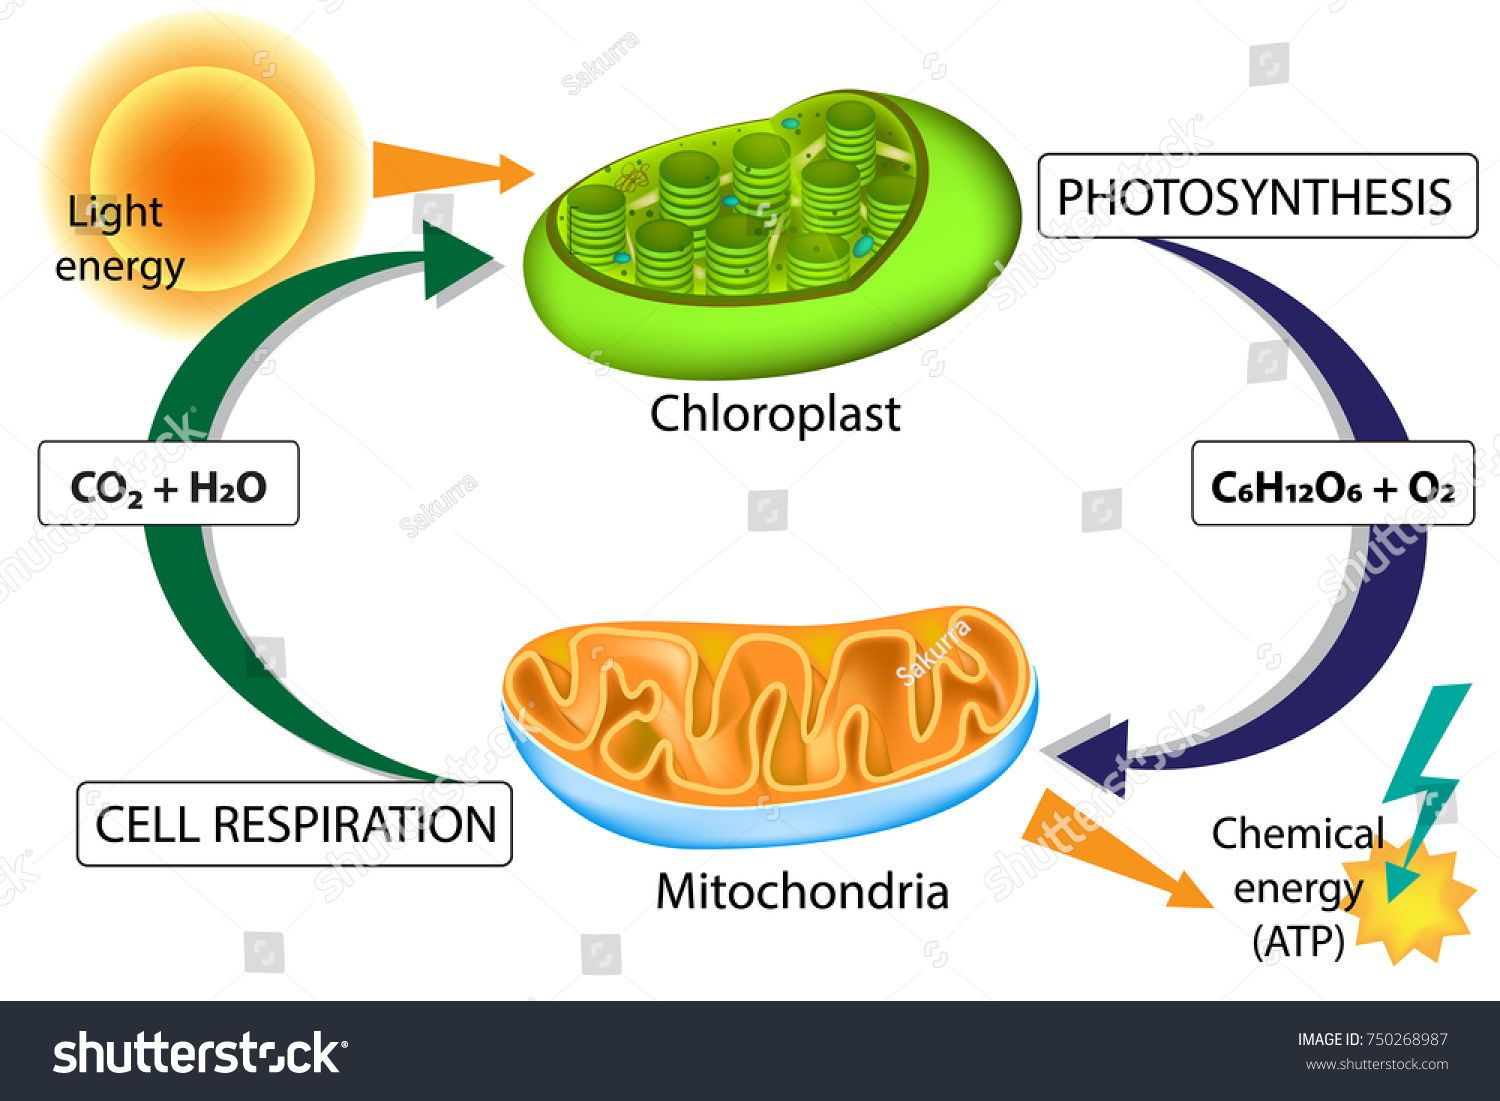 Photosynthesis And Cellular Respiration Chloroplast And